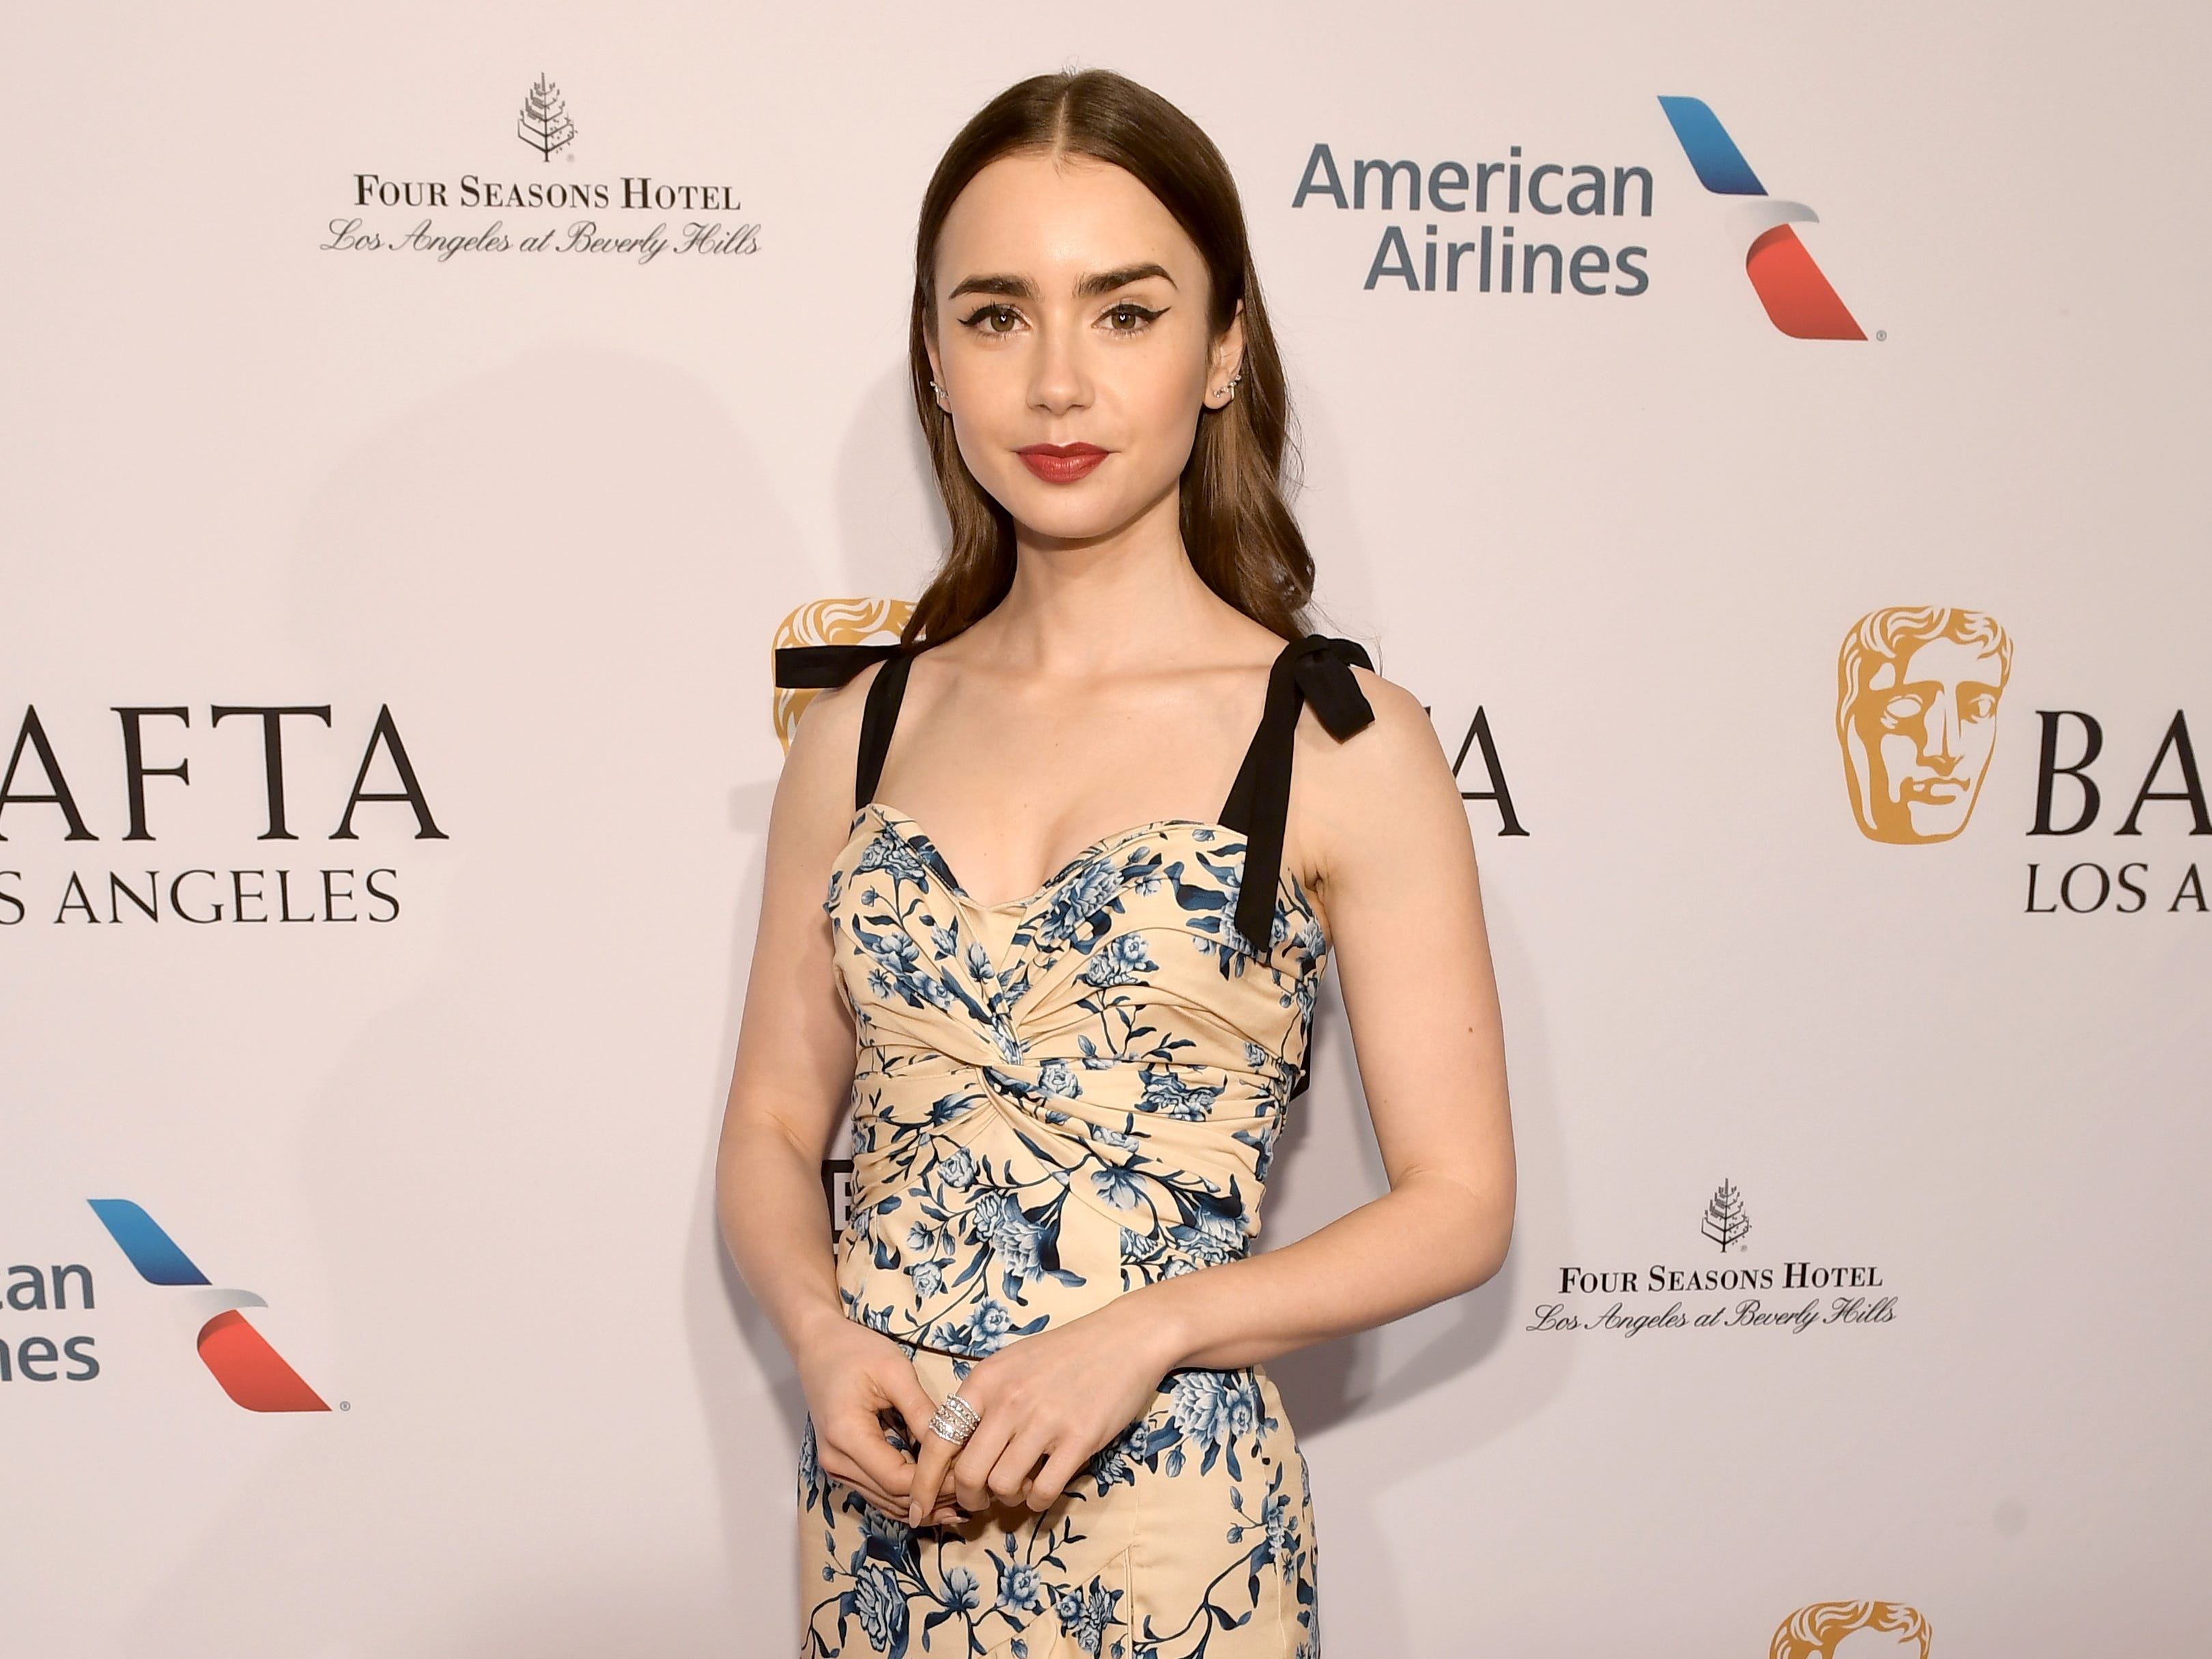 LOS ANGELES, CA - JANUARY 05:  Lily Collins attends The BAFTA Los Angeles Tea Party at Four Seasons Hotel Los Angeles at Beverly Hills on January 5, 2019 in Los Angeles, California.  (Photo by Matt Winkelmeyer/Getty Images) ORG XMIT: 775256316 ORIG FILE ID: 1077911908